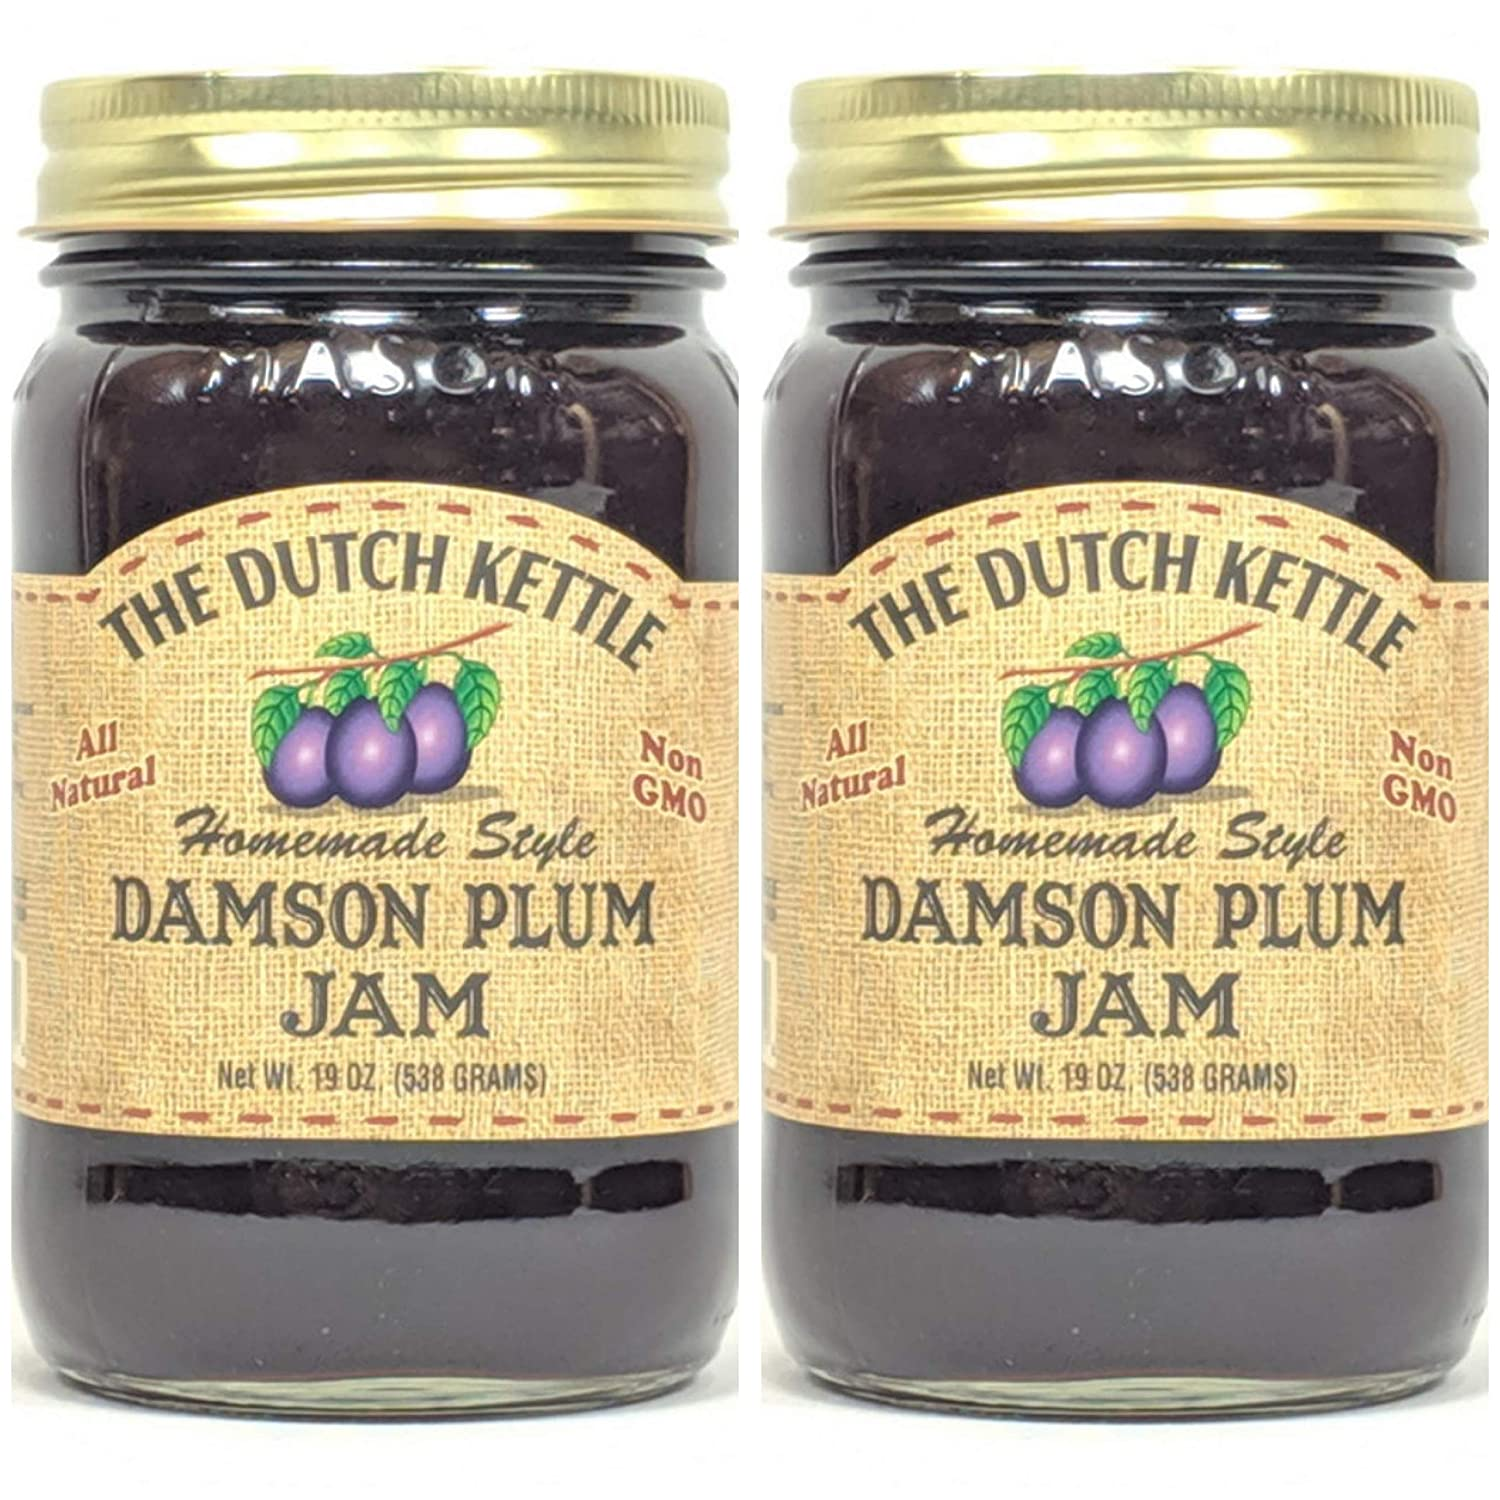 The Dutch Kettle Amish Homemade Style Damson Plum Jam 2 - 19 Oz. Jars All Natural Non-GMO No Preservatives